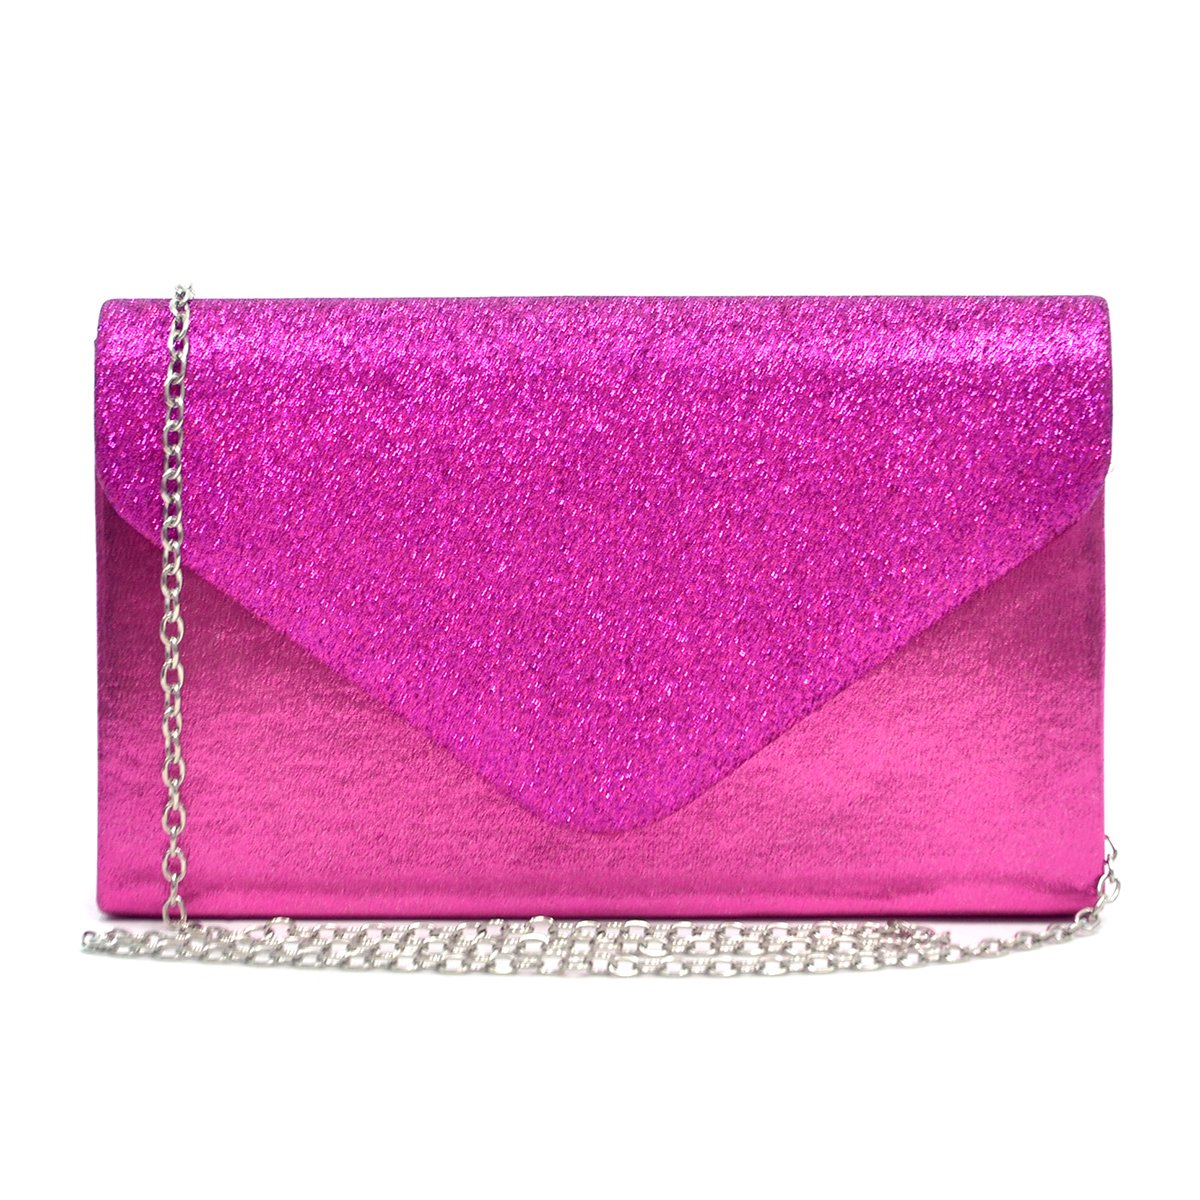 Womens Envelope Flap Clutch Handbag Evening Bag Purse Glitter Frosted Sequin Party Hot Pink